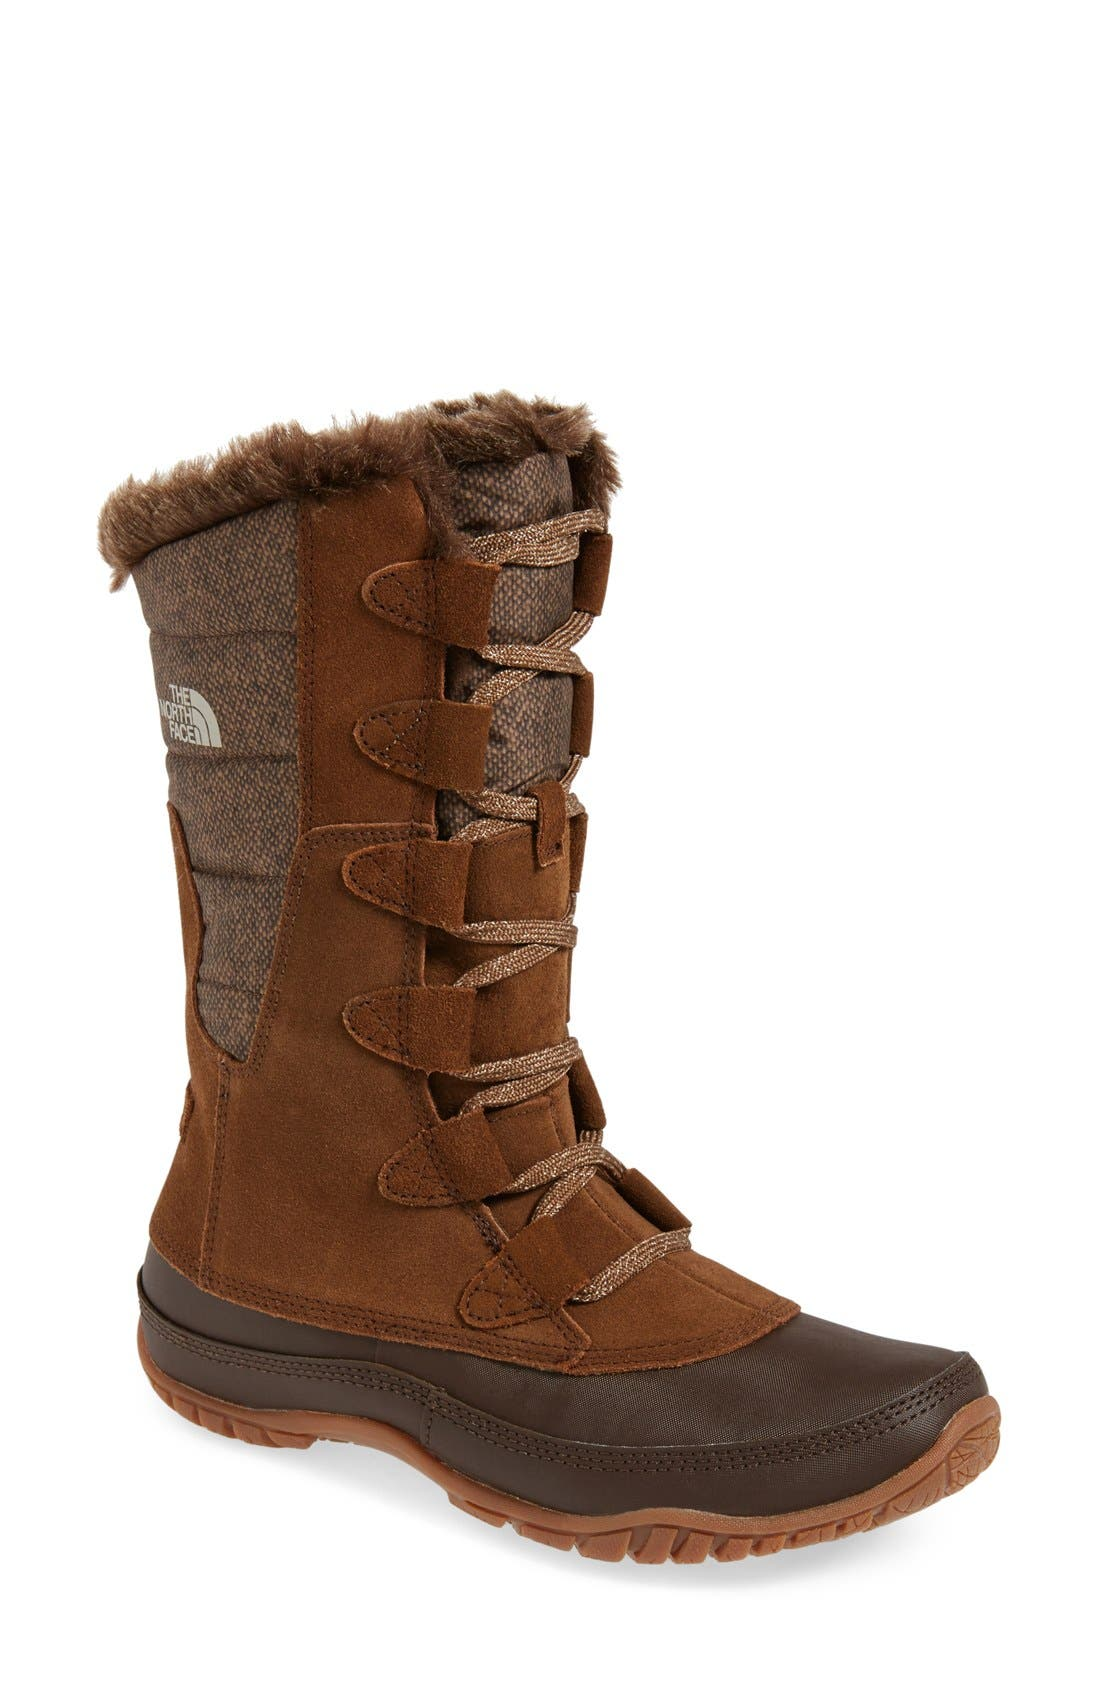 Main Image - The North Face 'Nuptse Purna' Waterproof PrimaLoft® Eco Insulated Winter Boot (Women)